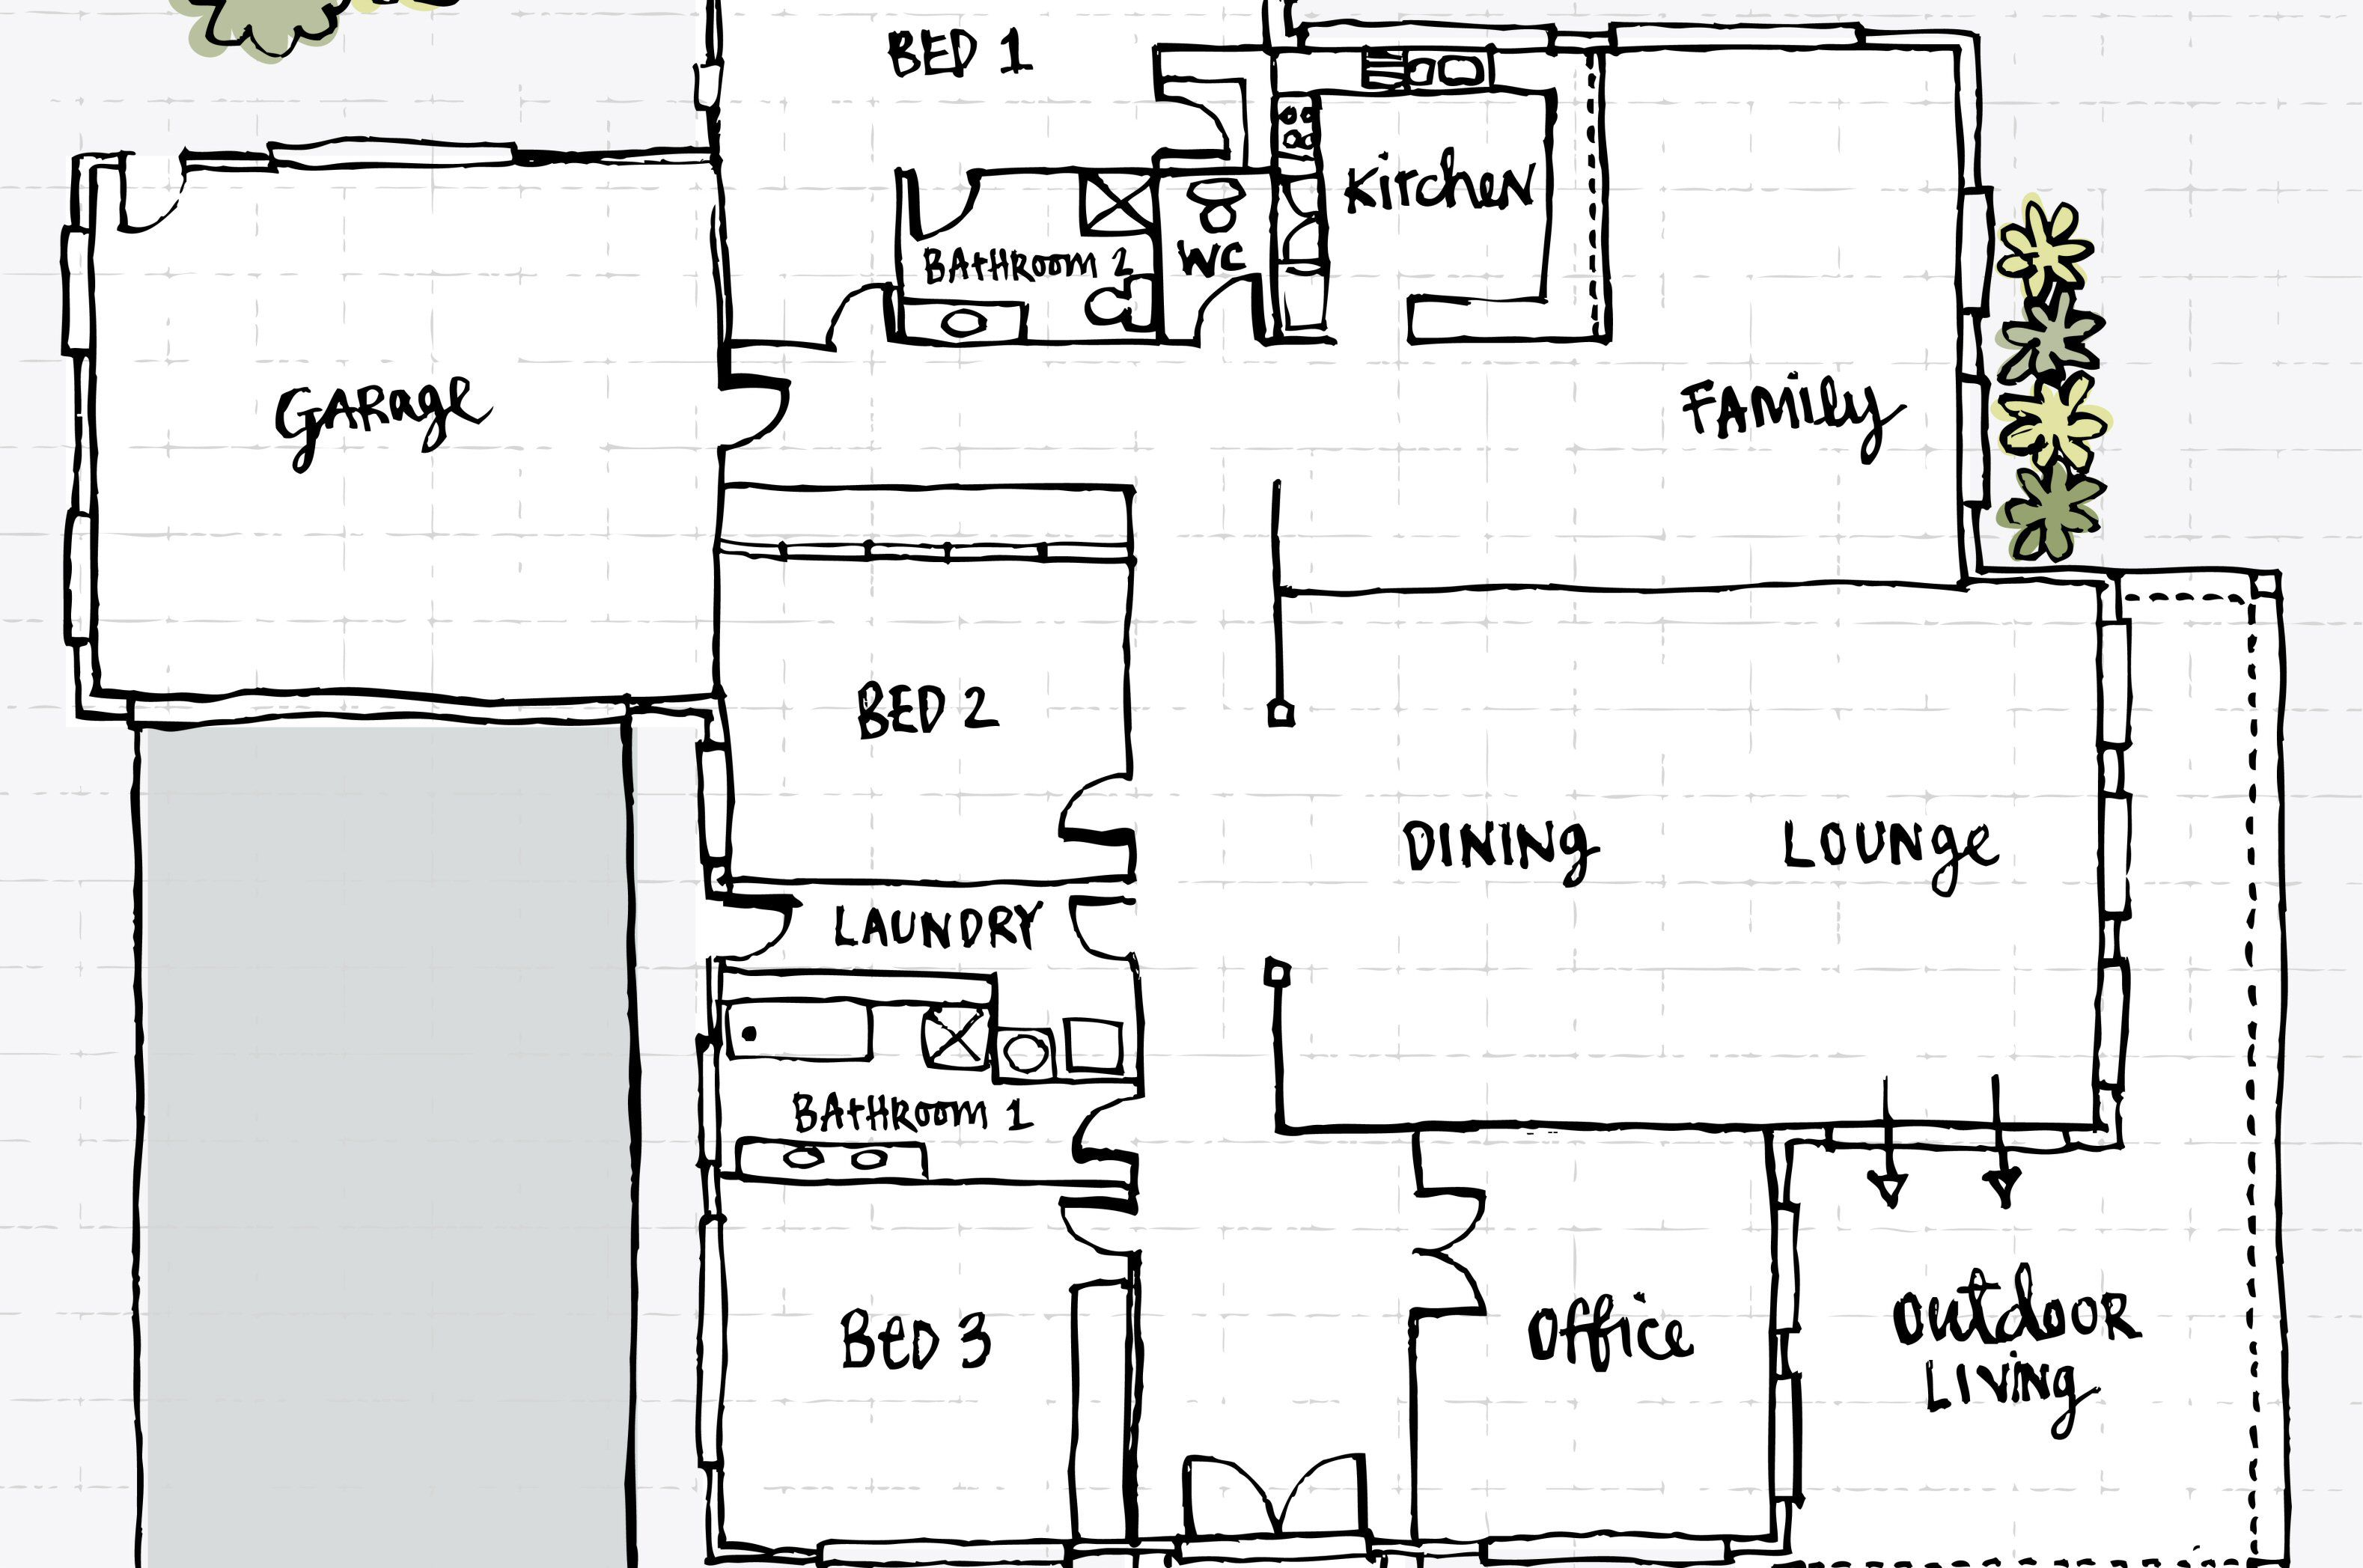 Office Floor Plan App: What Is A Floor Plan And Can You Build A House With It?